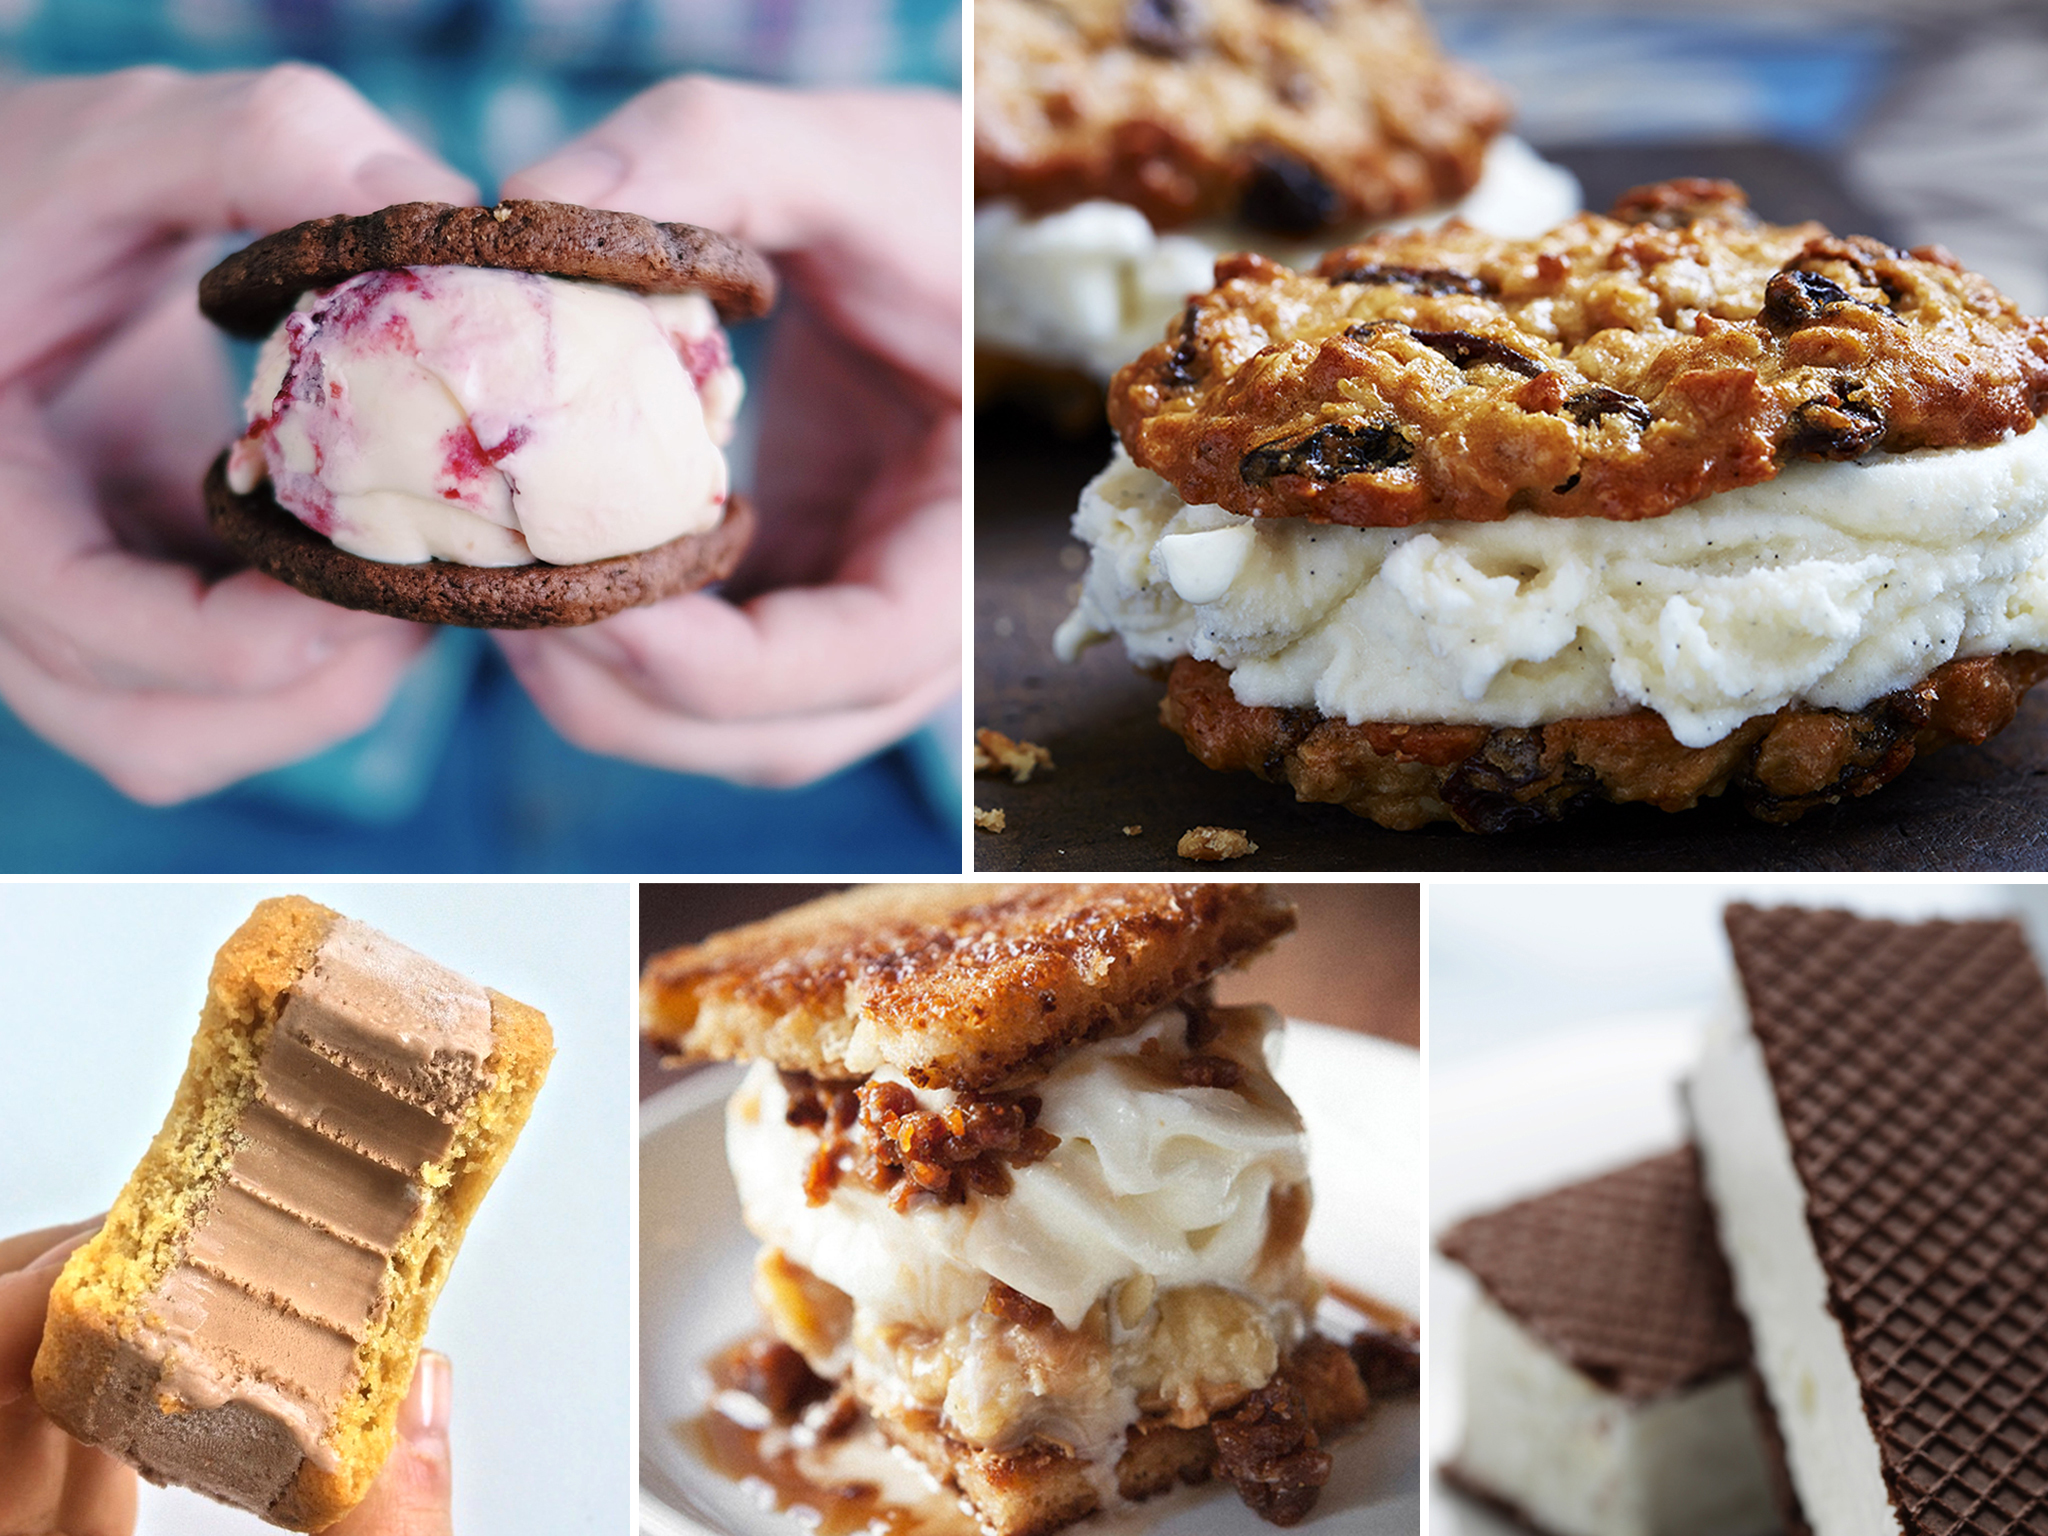 The best ice-cream sandwiches in London